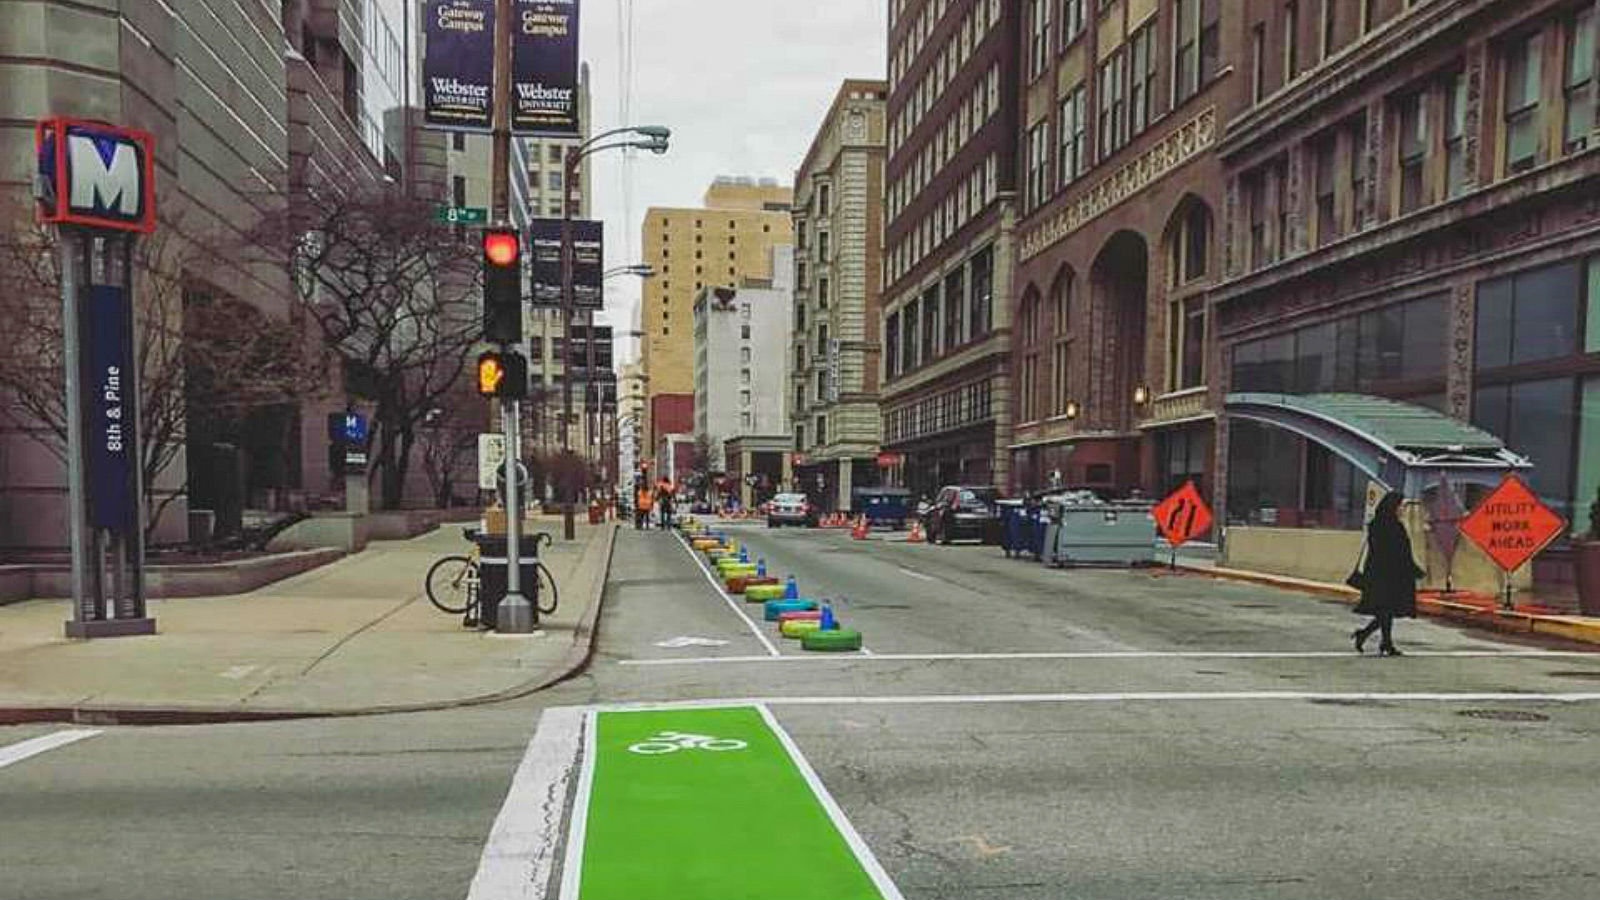 Enhancing Transportation Options: St. Louis Downtown Multimodal Plan on Agenda for Adoption by City Planning Commission